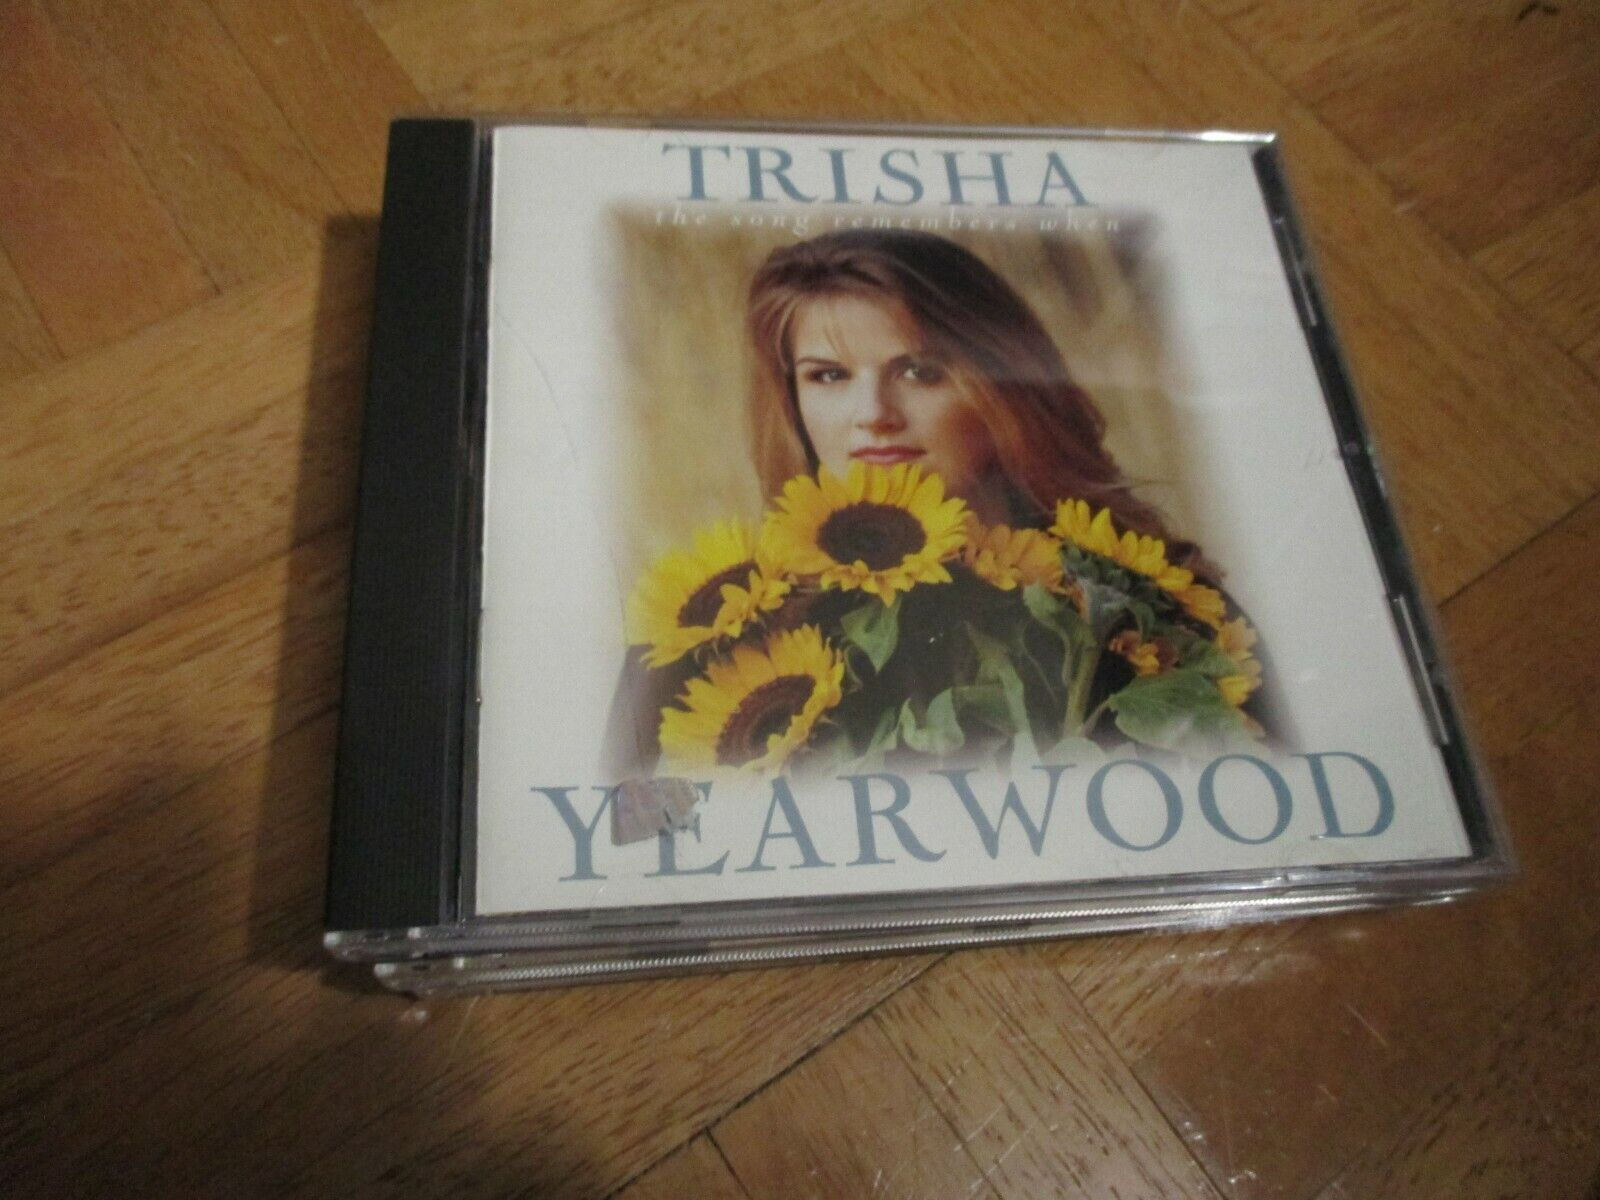 Trisha Yearwood The Song Remembers When CD - $3.00